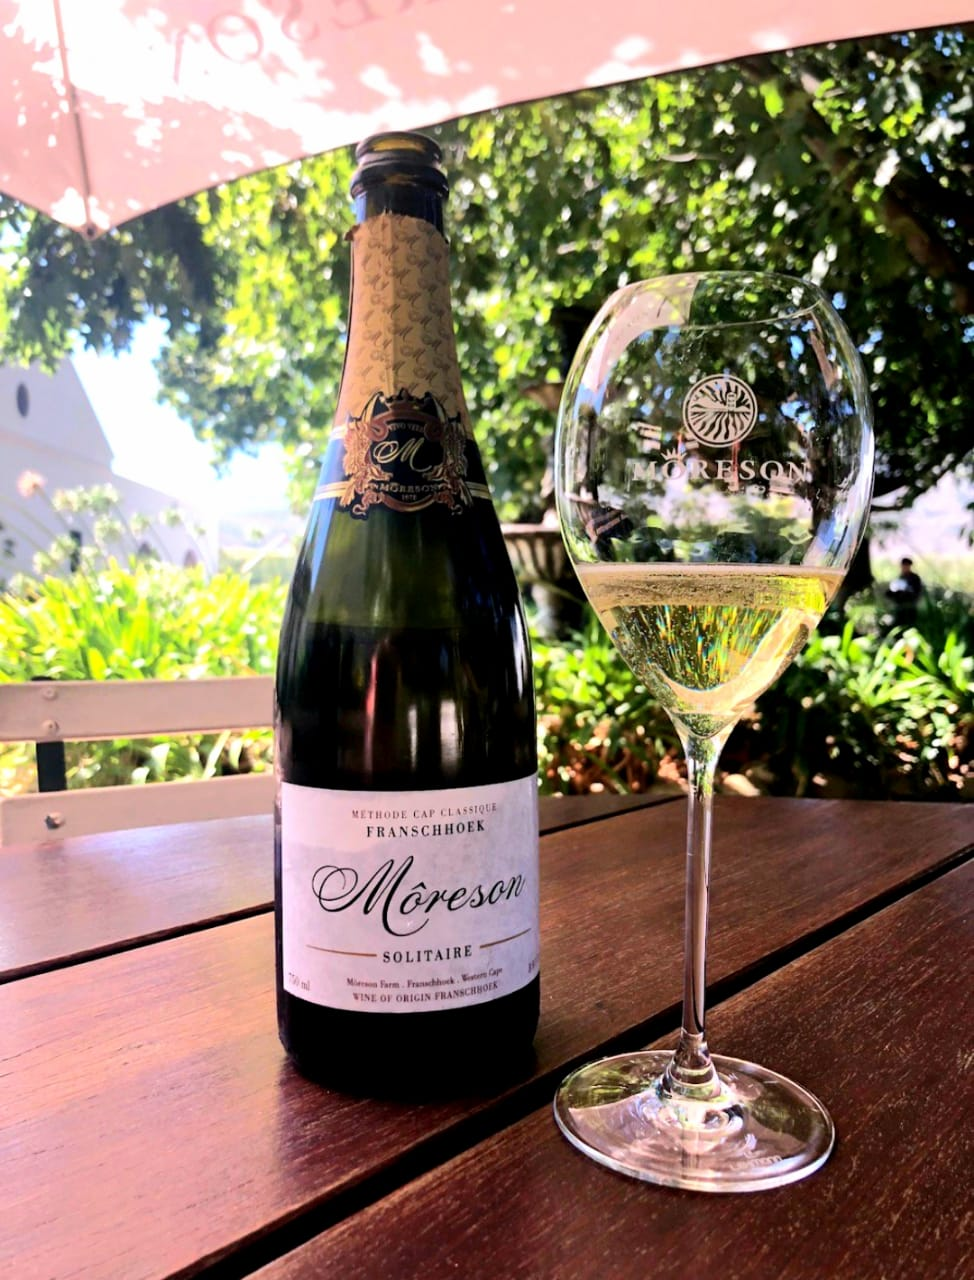 Winemakers Dinner Series 2019 : Part 4 - Môreson : Clayton ReabowFor this instalment of our dinner series, we welcome Clayton Reabow, winemaker of Môreson.Wed 5 June 2019 - 18h30 for 19h005-course bespoke menu including wine pairing R745 p.p.